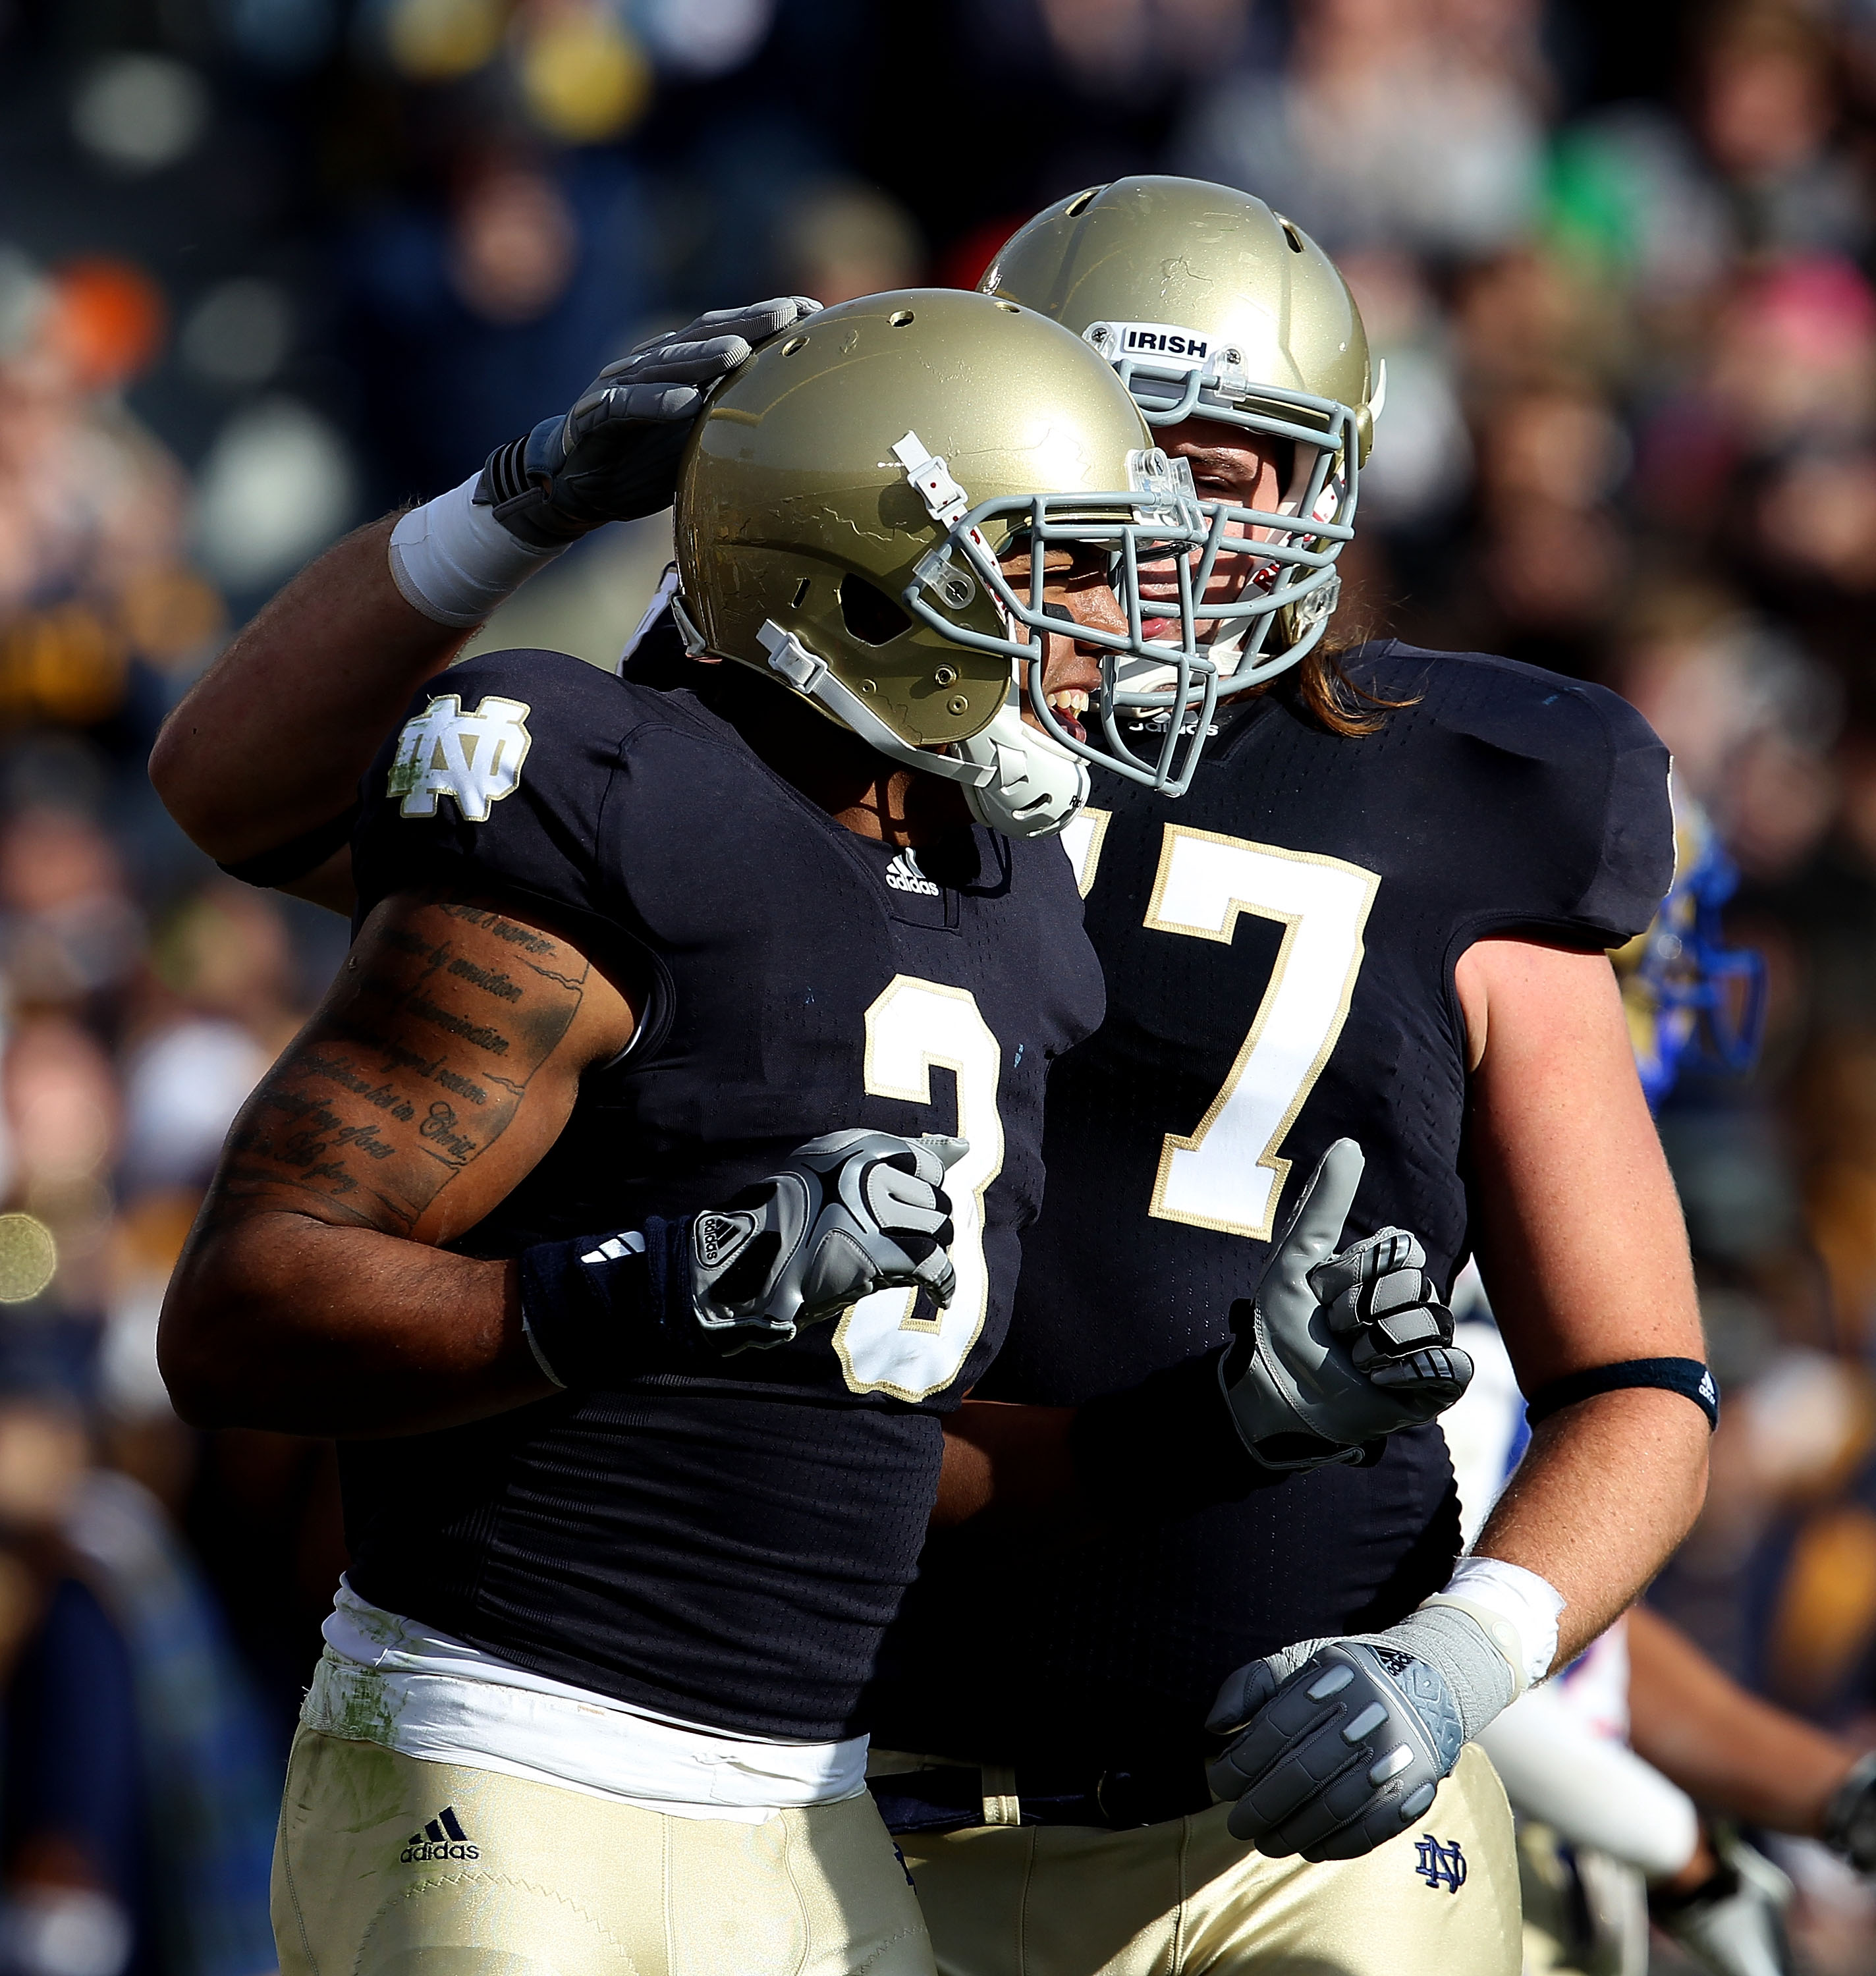 SOUTH BEND, IN - OCTOBER 30: Matt Romine #77 of the Notre Dame Fighting Irish congratulates teammate Michael Floyd #3 after a touchdown against the Tulsa Golden Hurricane at Notre Dame Stadium on October 30, 2010 in South Bend, Indiana. Tulsa defeated Not